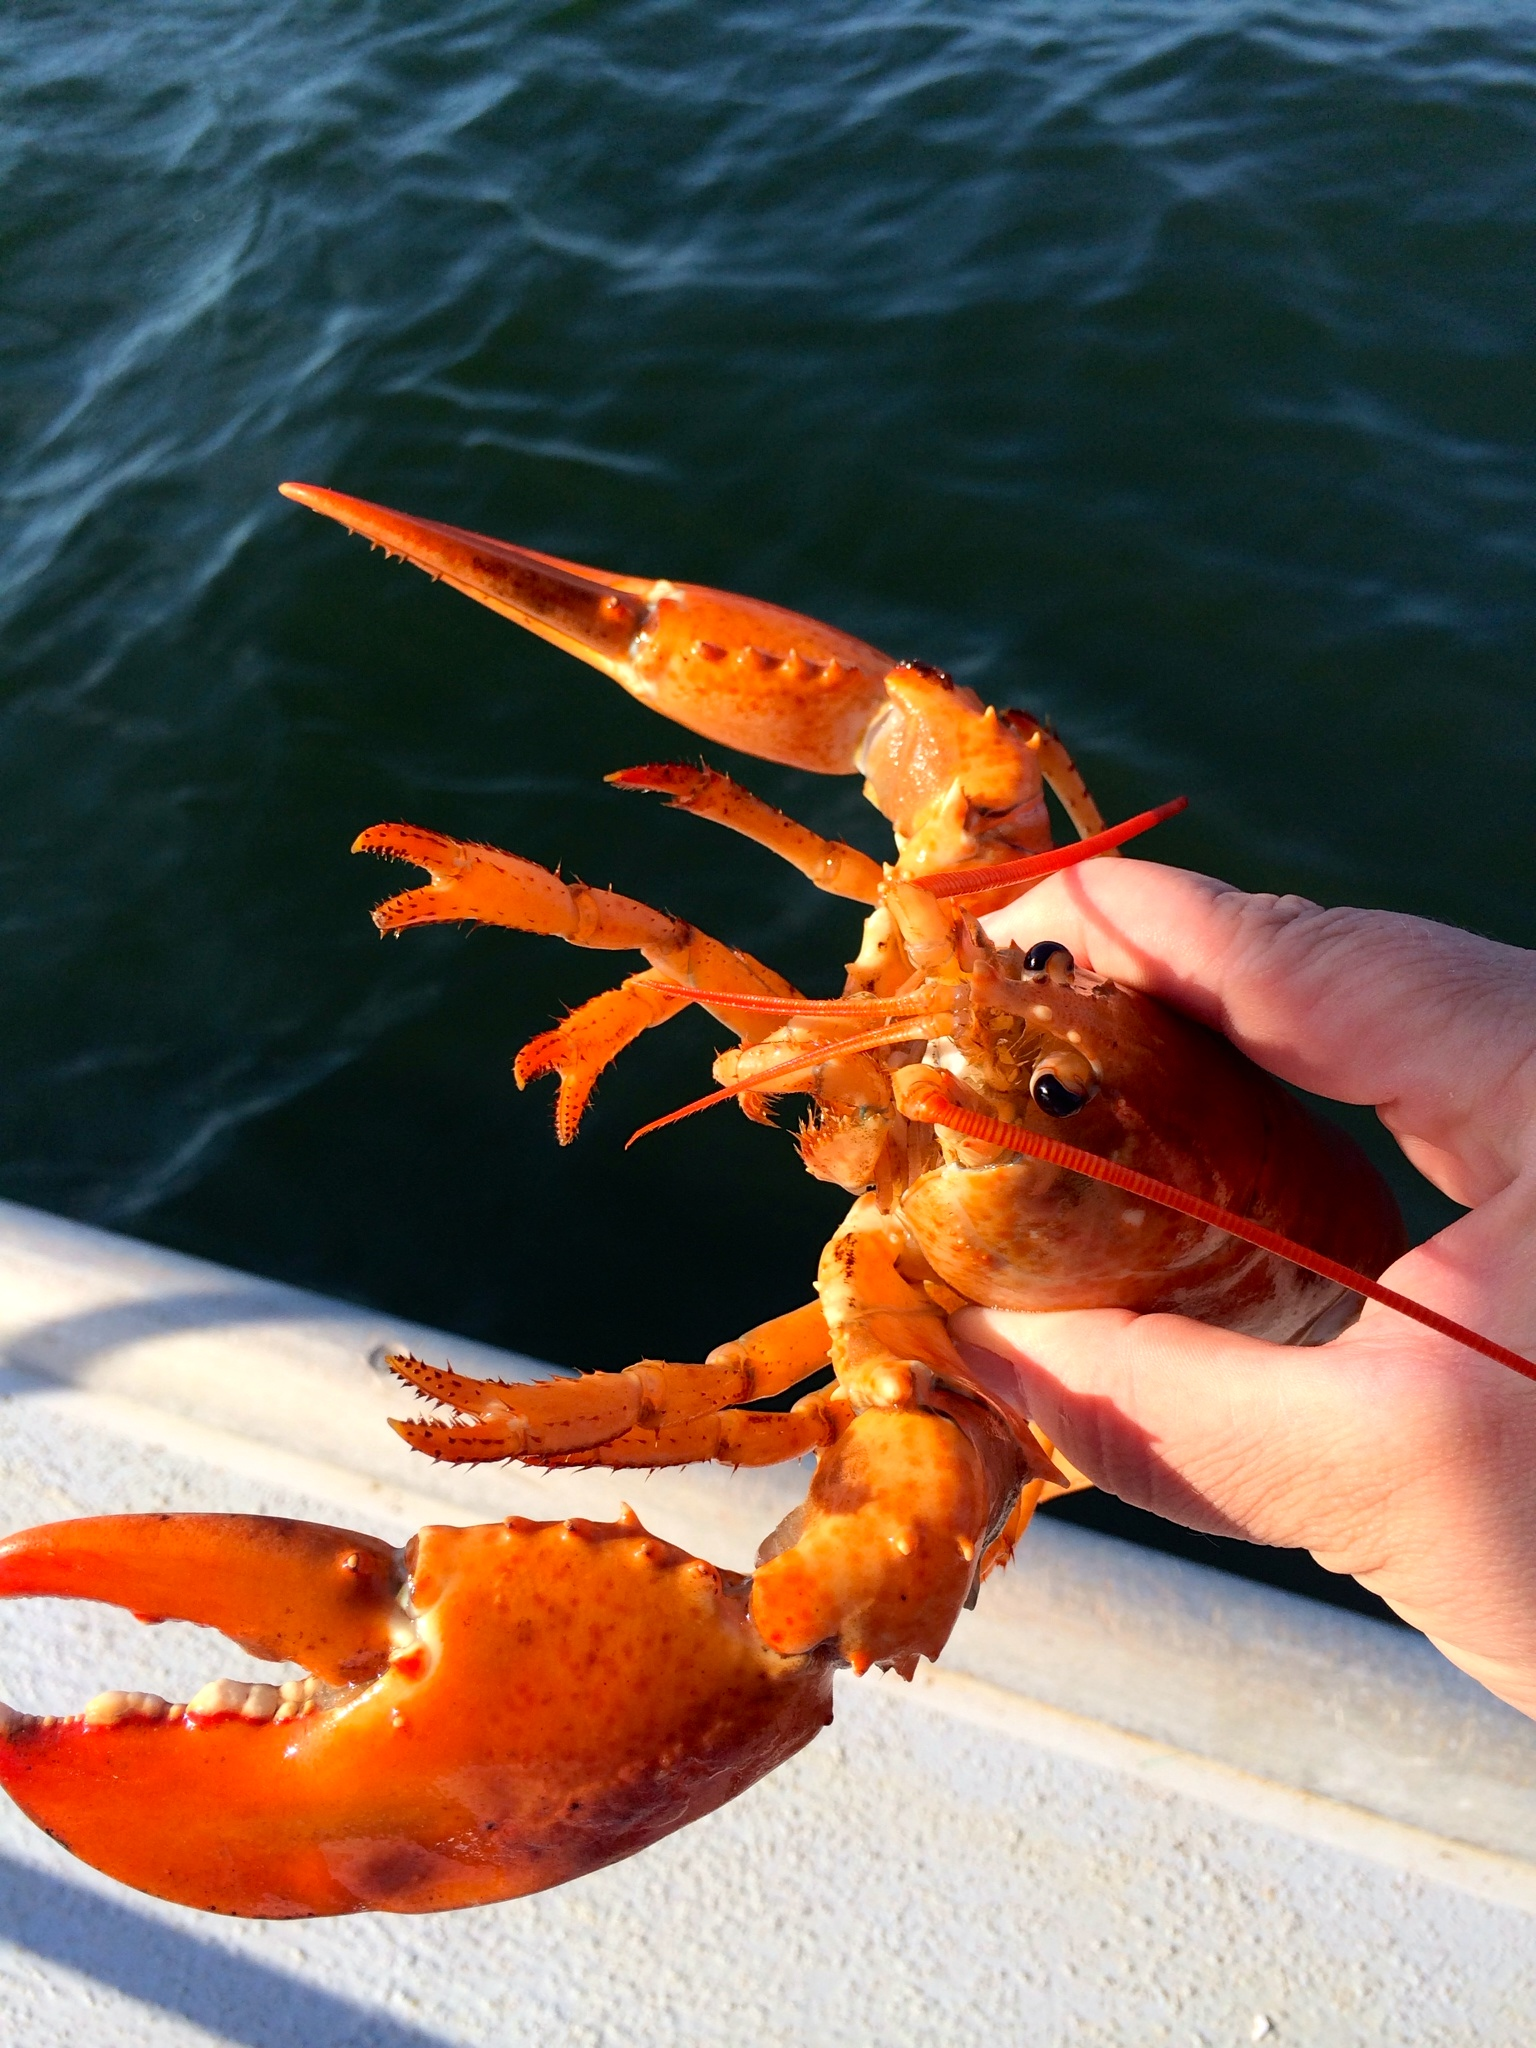 Holding my little orange lobster.